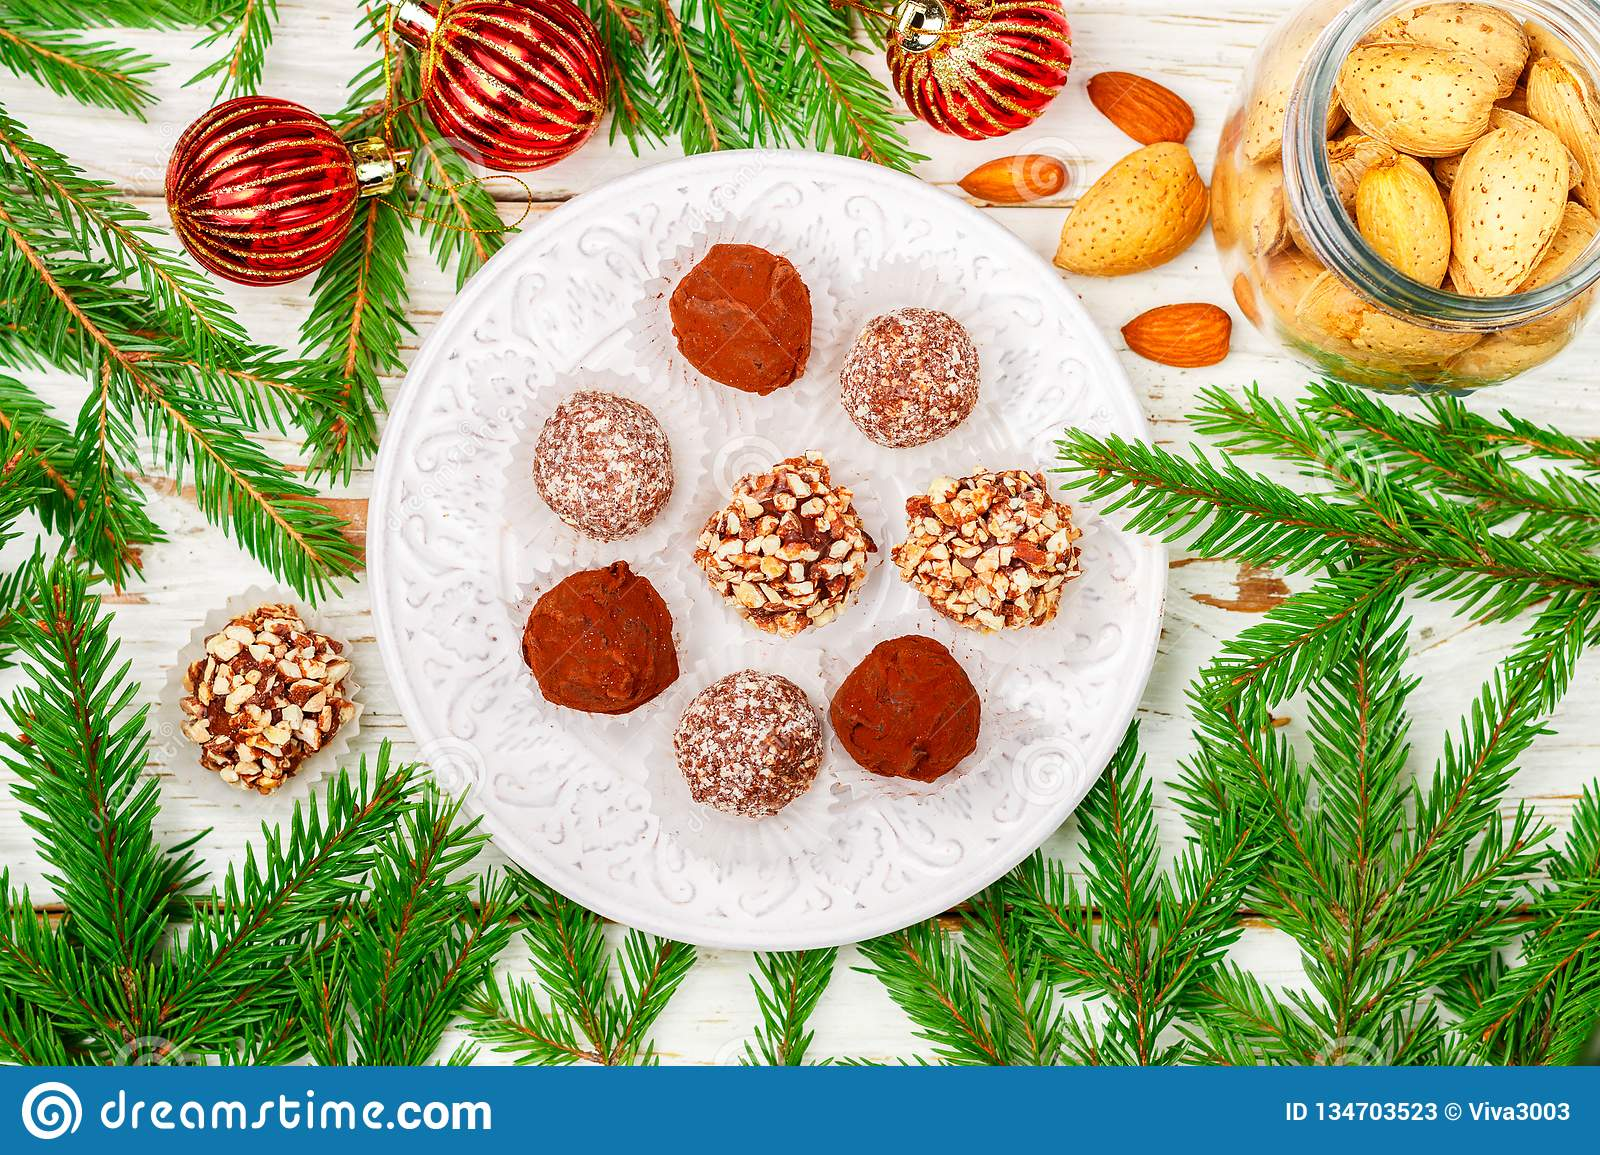 Homemade chocolate truffles with almonds, coconut and biscuits crumb in a white plate